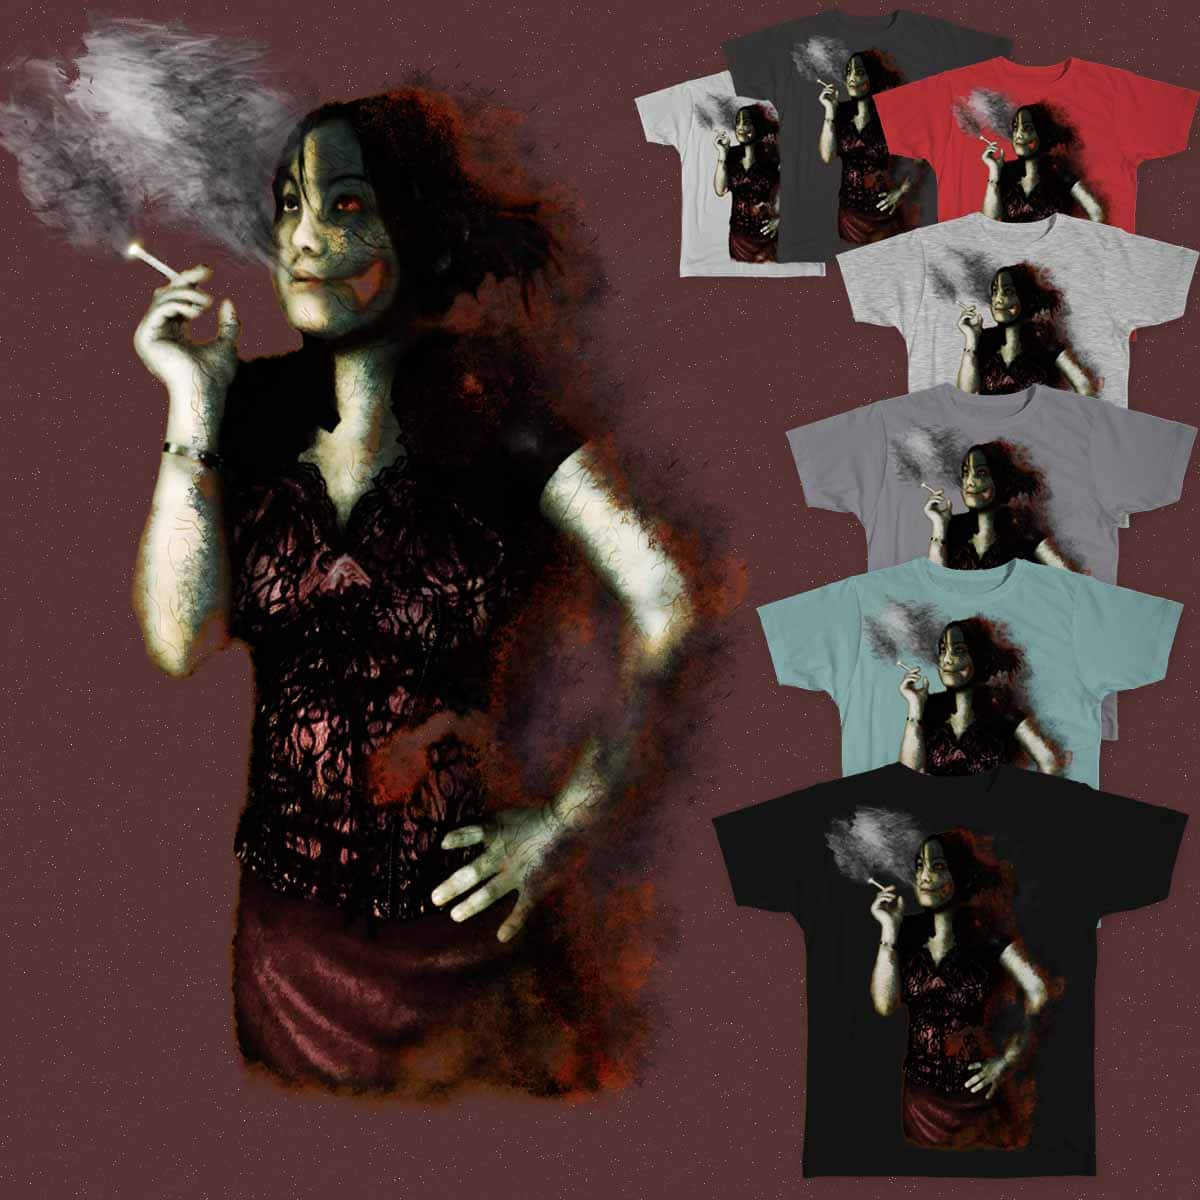 Smoking Hot by OliverDemers and goliath72 on Threadless